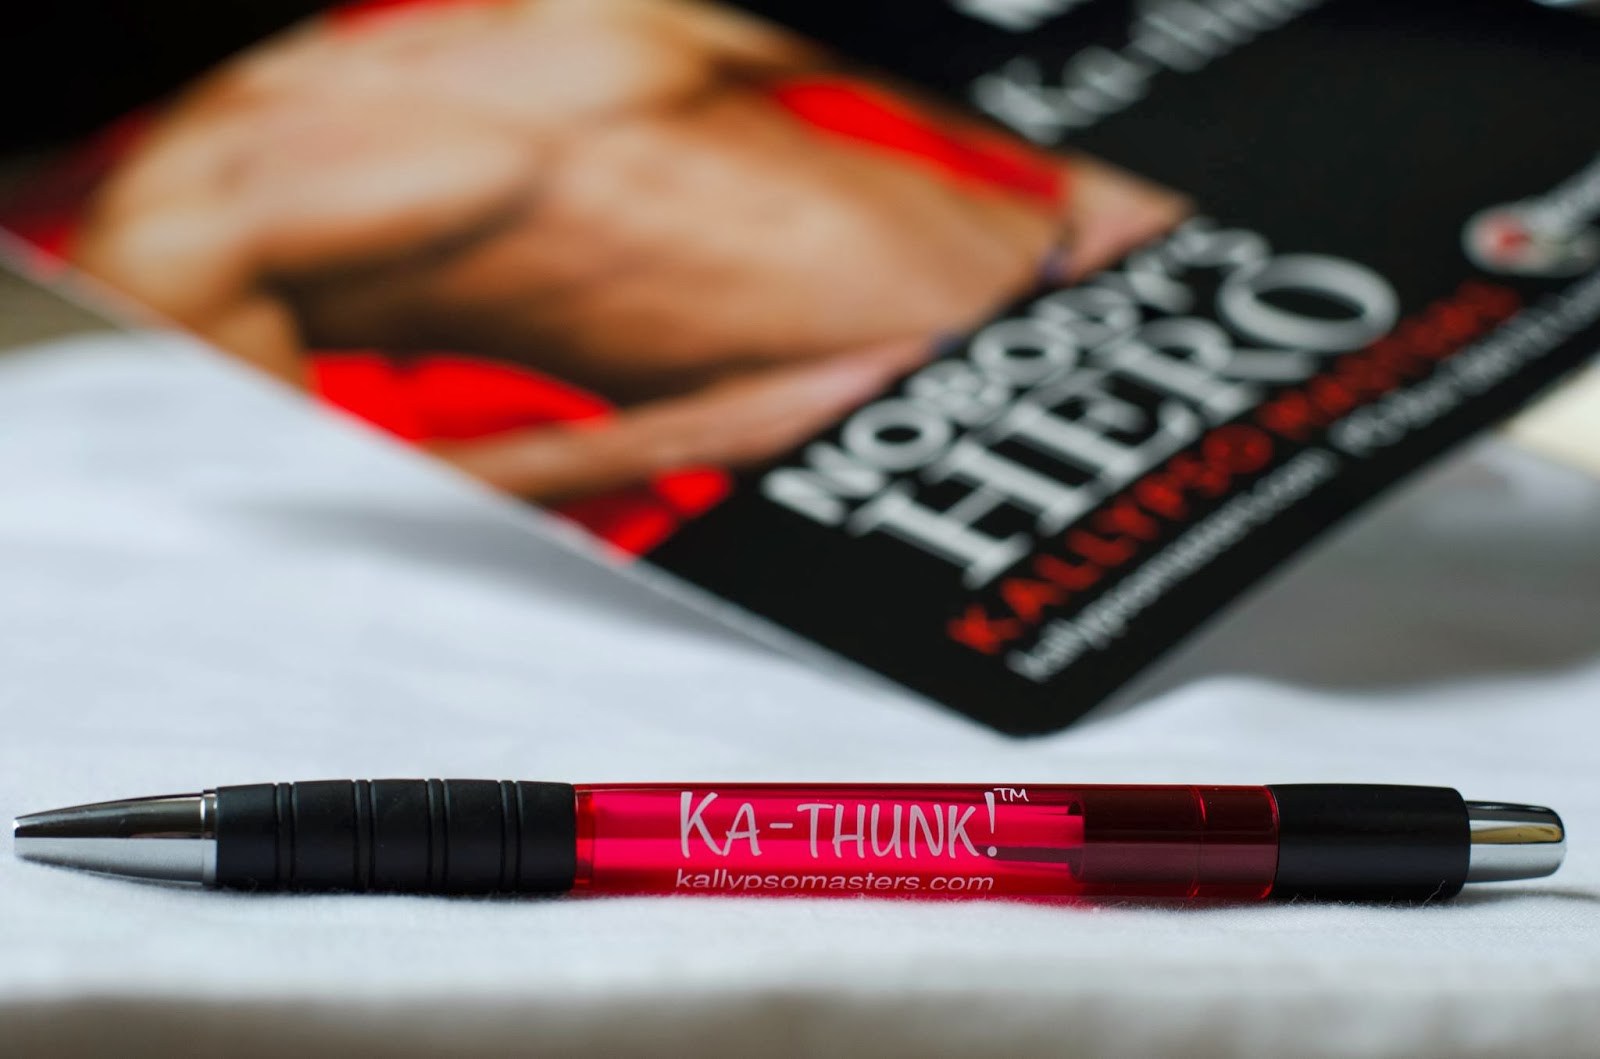 this red ka thunk pen hand fan a masters brat button and other cool